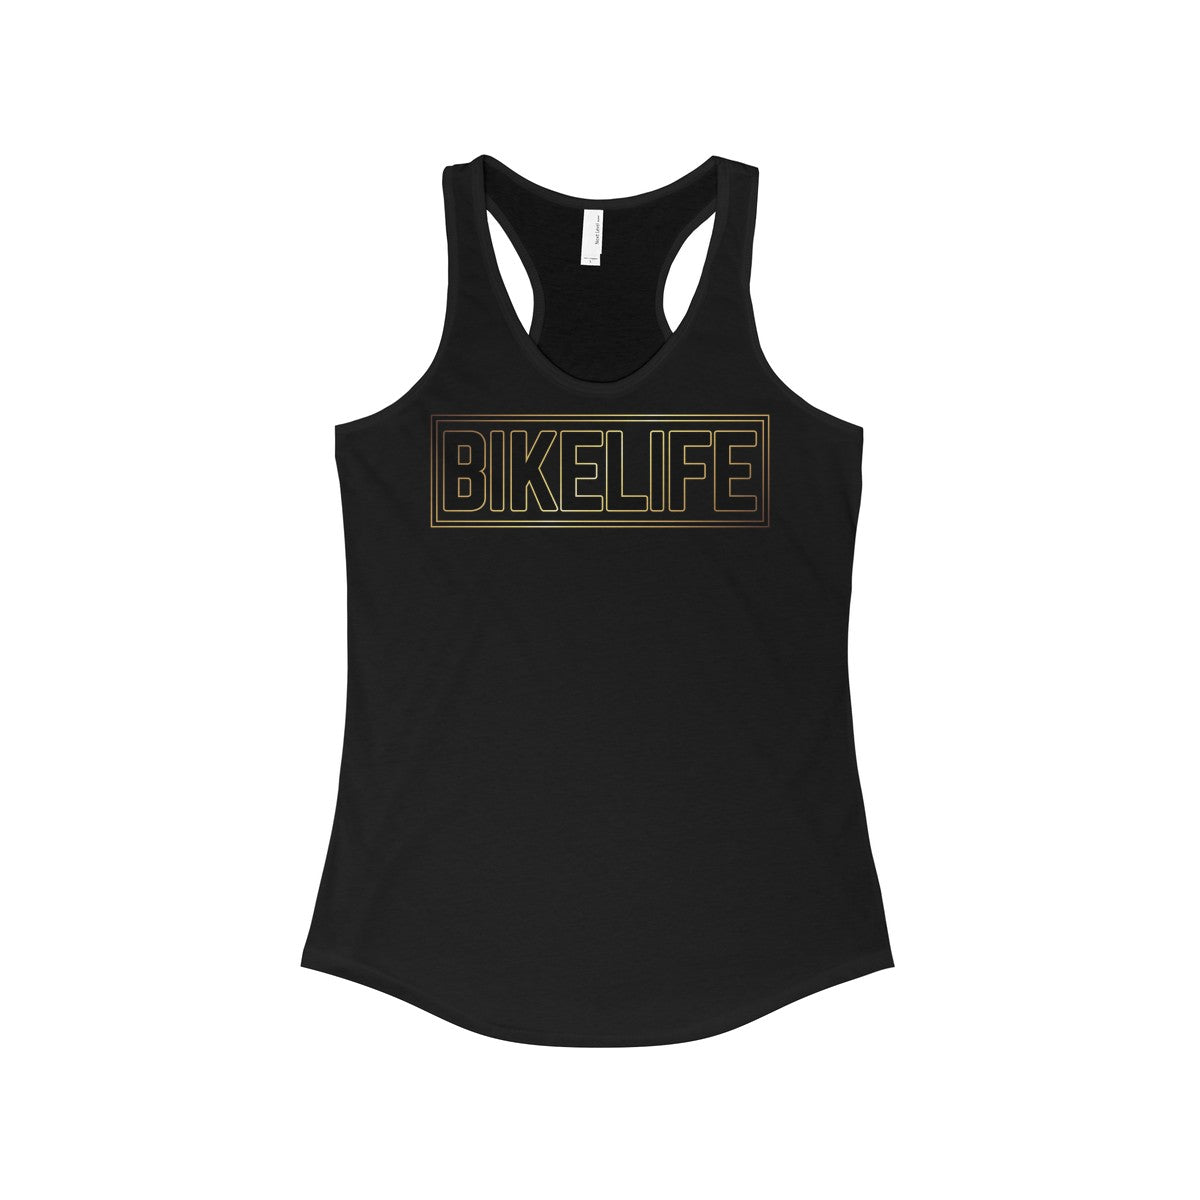 Bike Life Black and Gold Logo Women's Racerback Tank